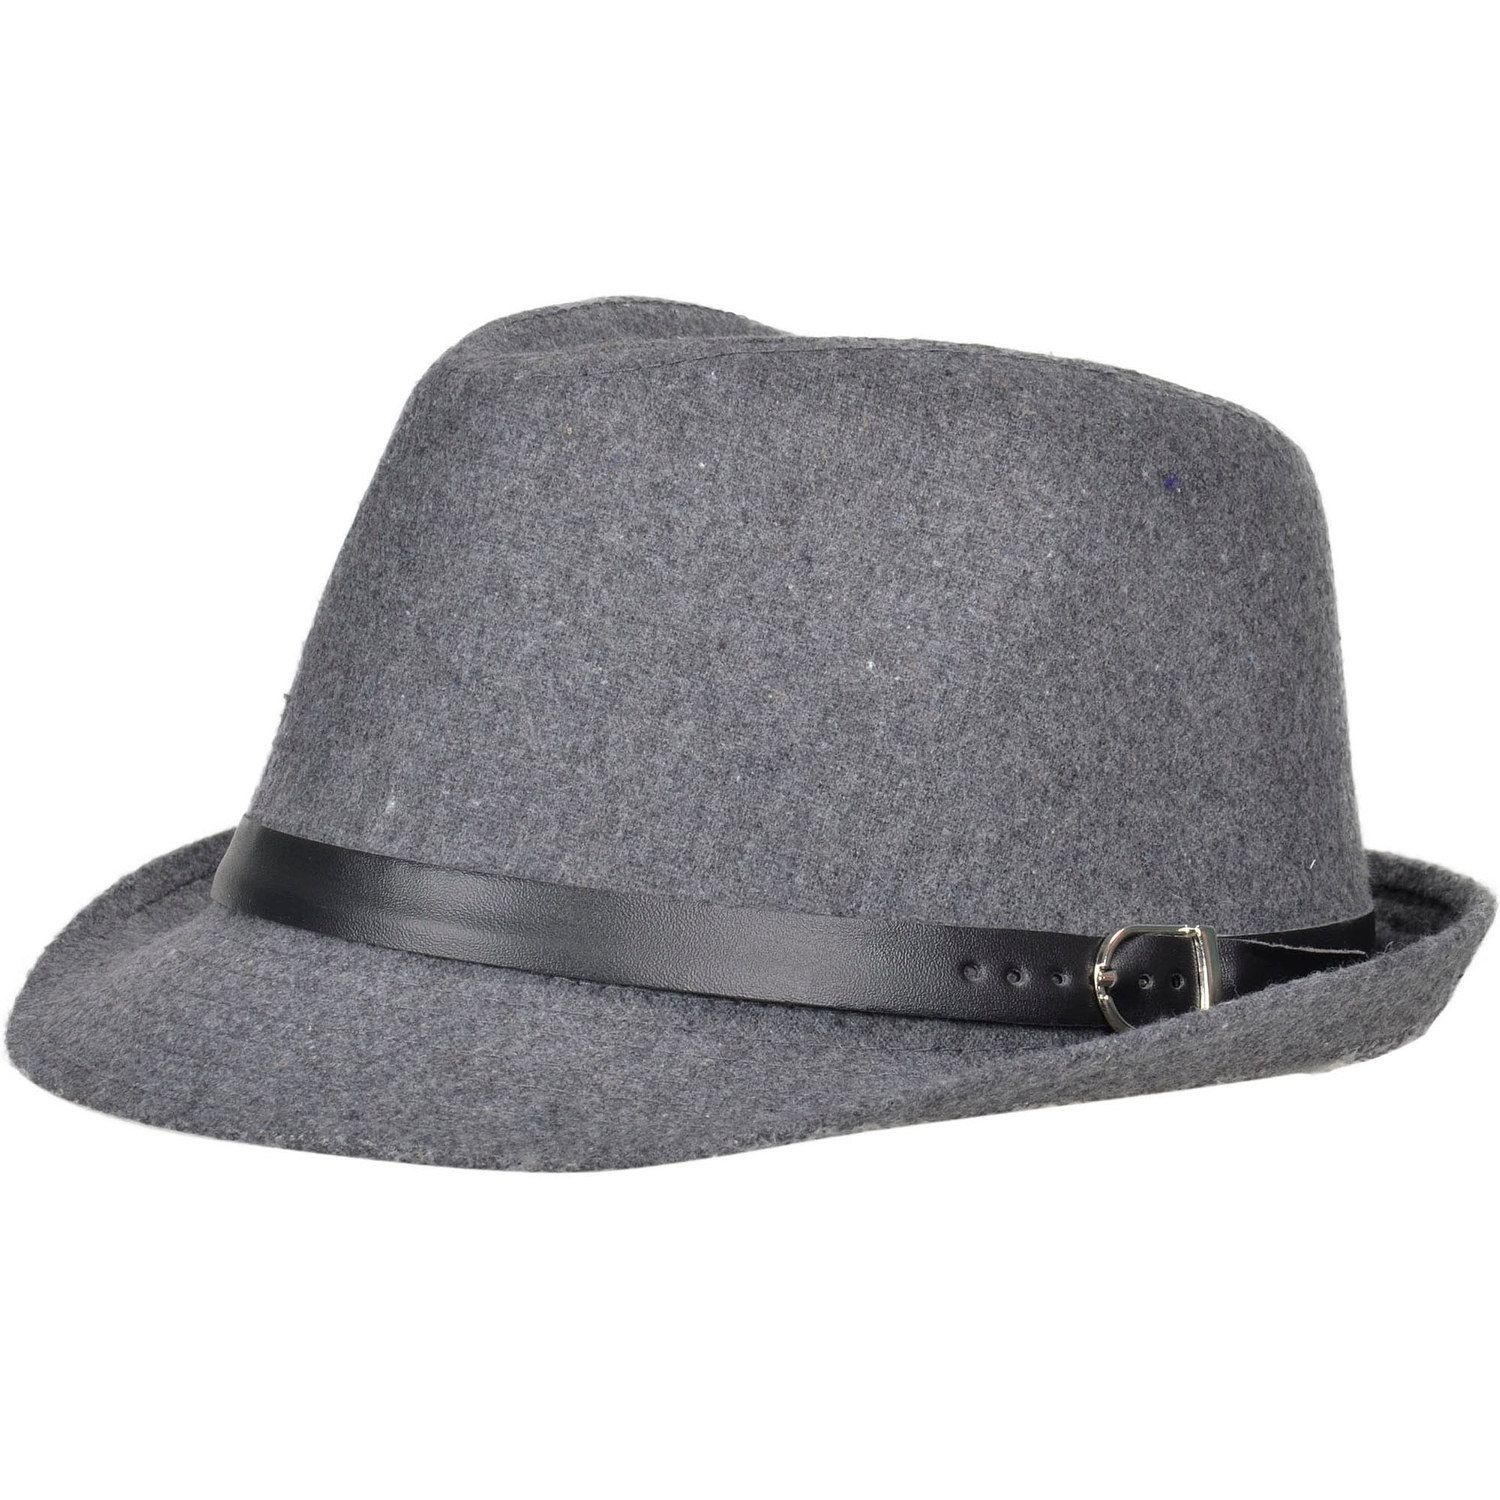 0be421387bff3 Simplicity Unisex Structured Gangster Trilby Fedora Hat